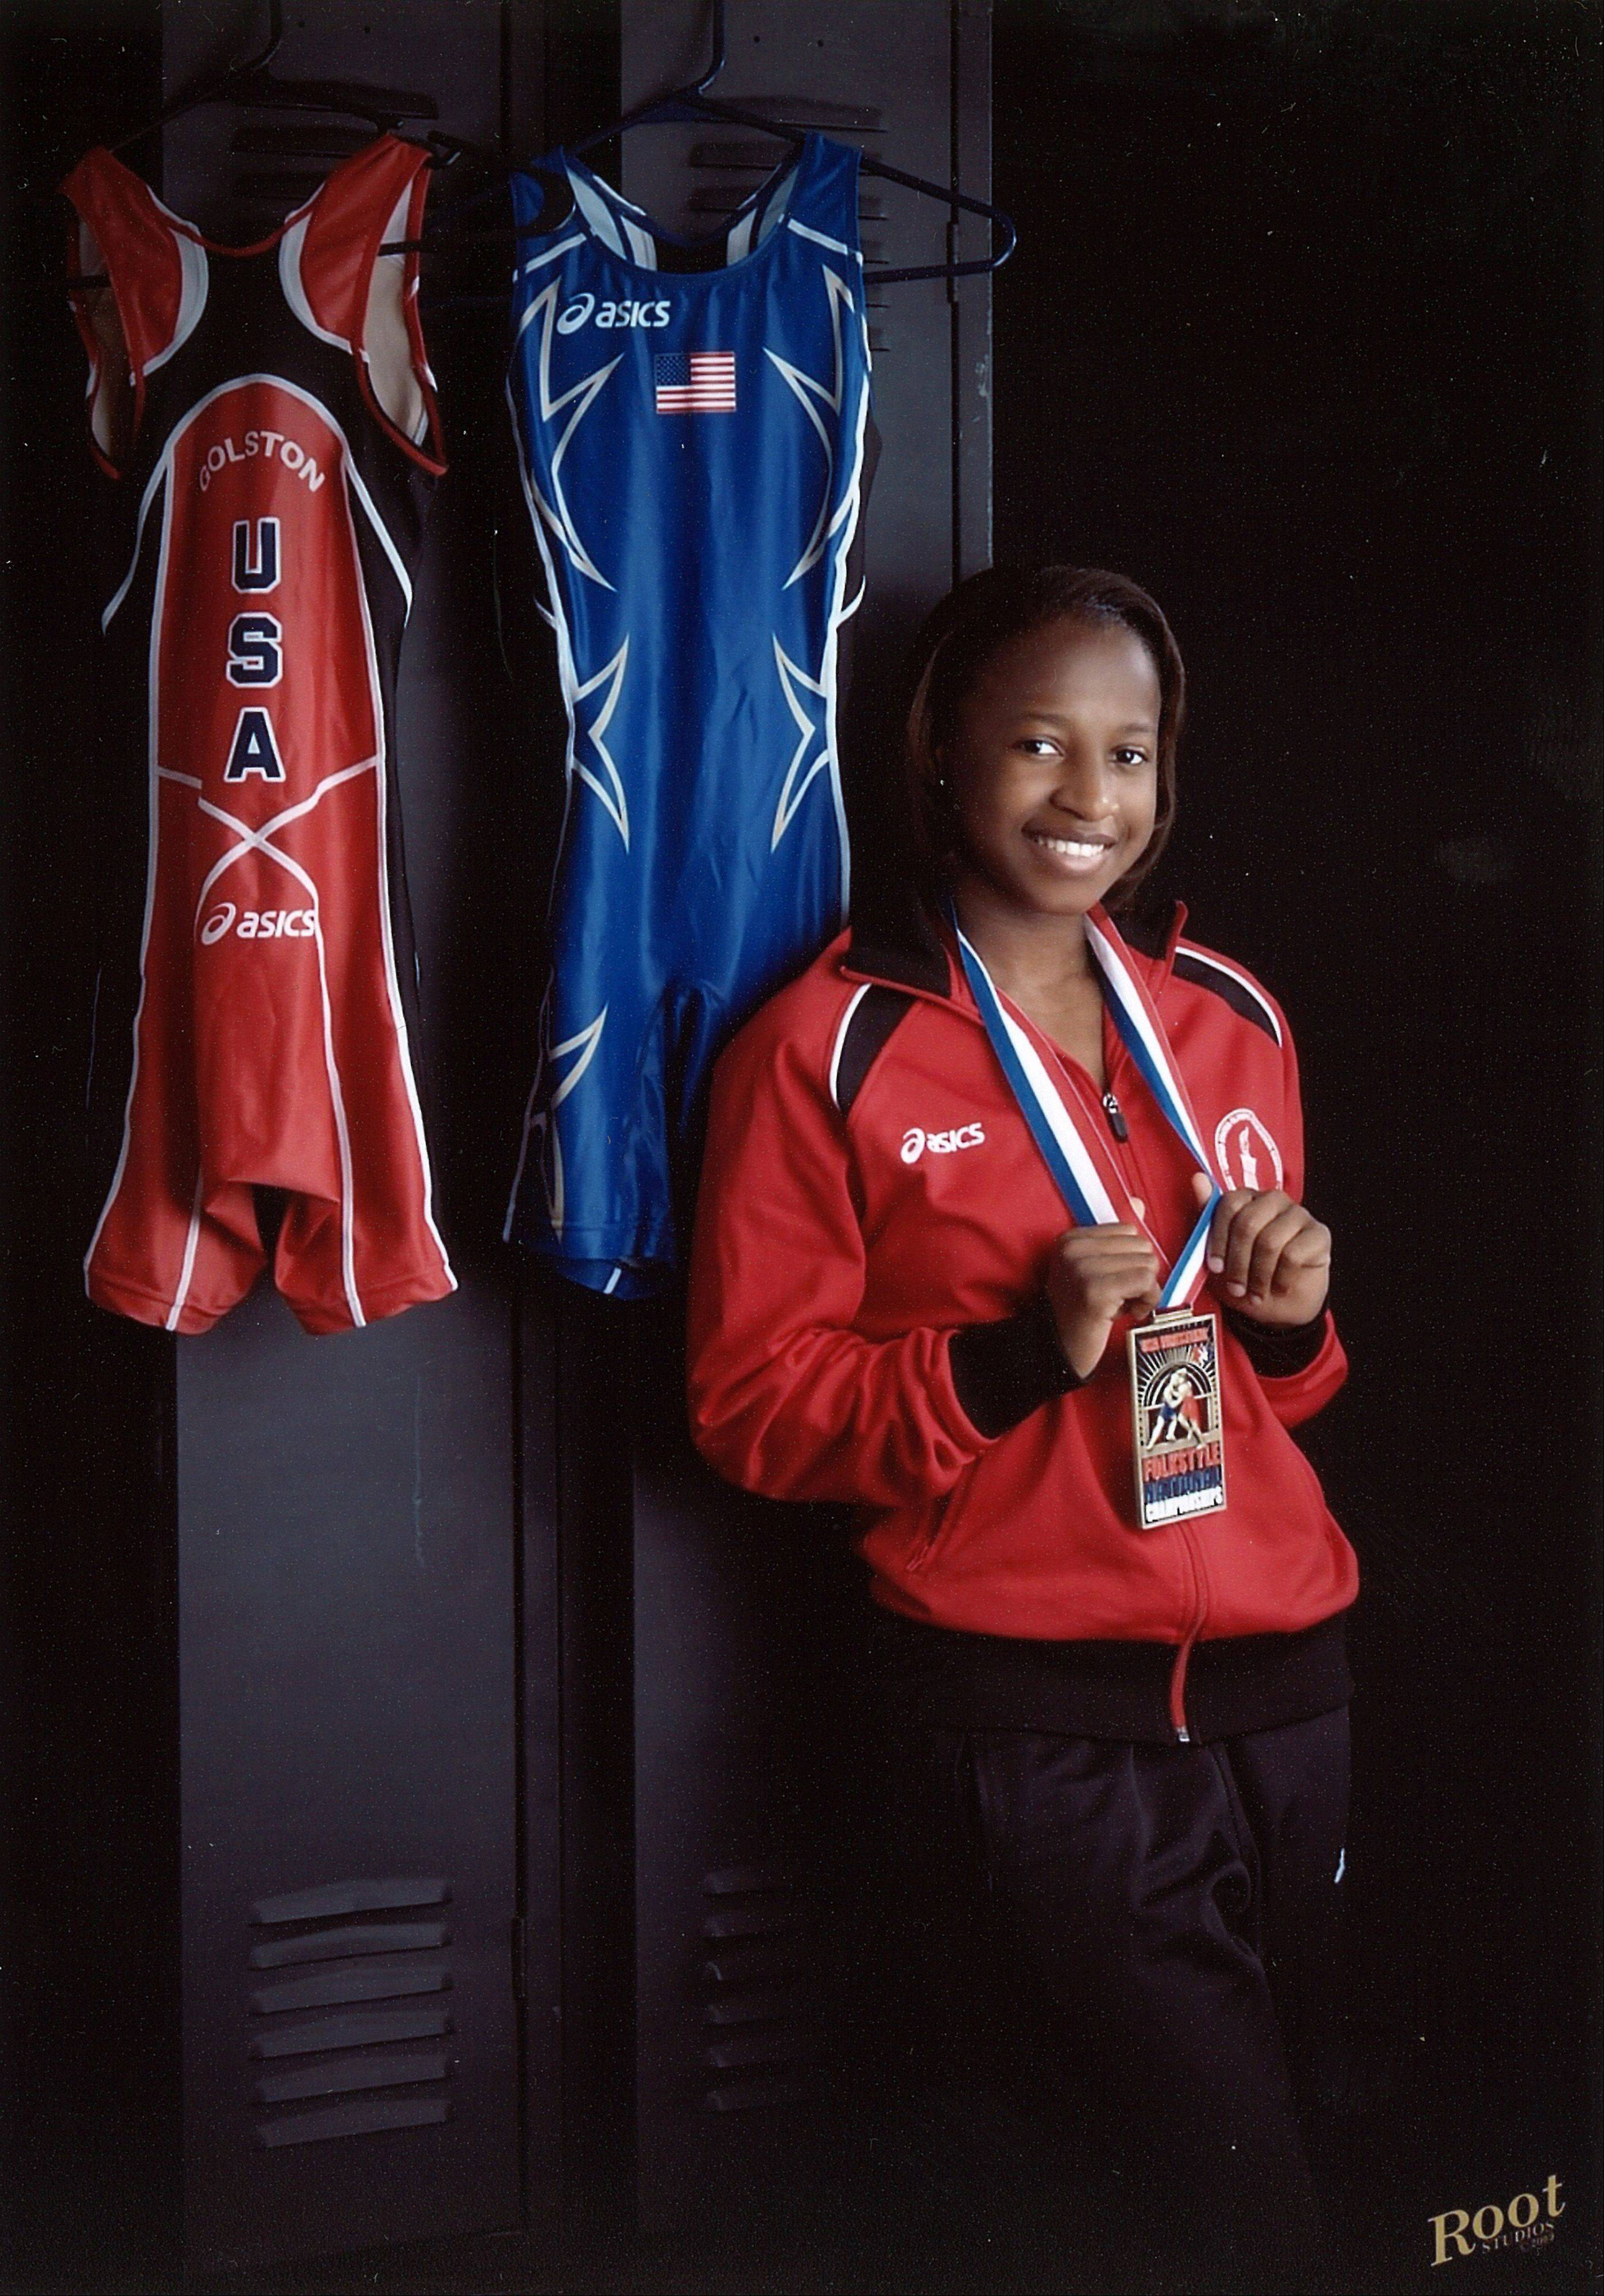 When her brother started winning wrestling medals, Erin Golston of Lake in the Hills decided at age 6 that she wanted some of her own.